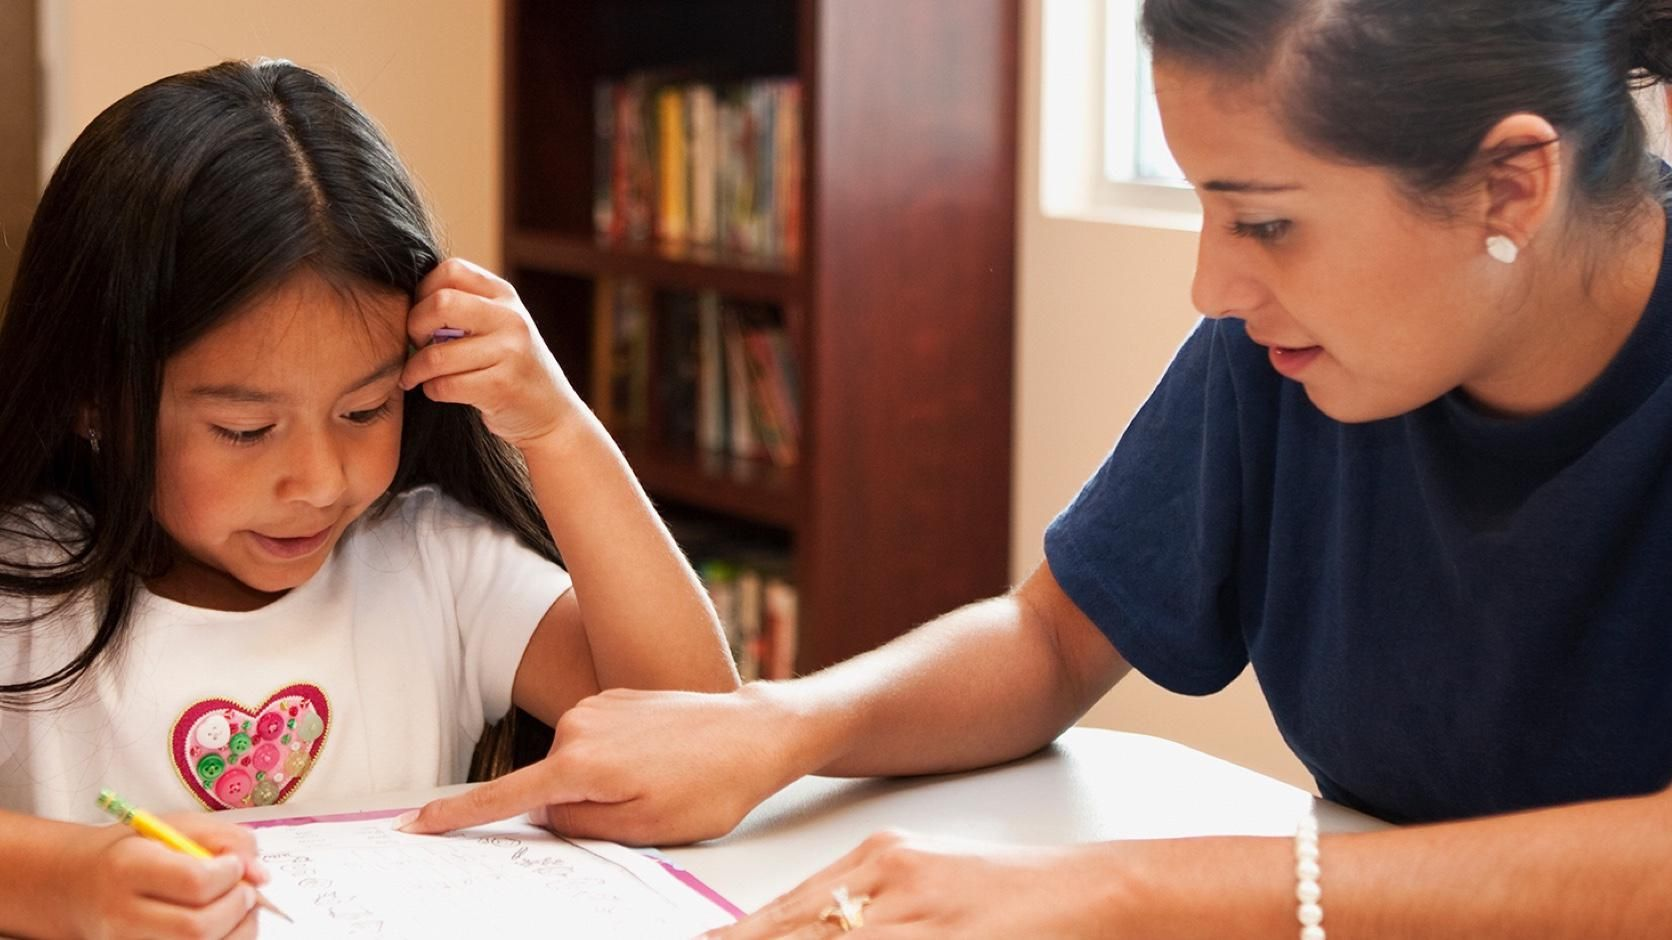 A young student gets help from a teacher. Critical support for teachers.